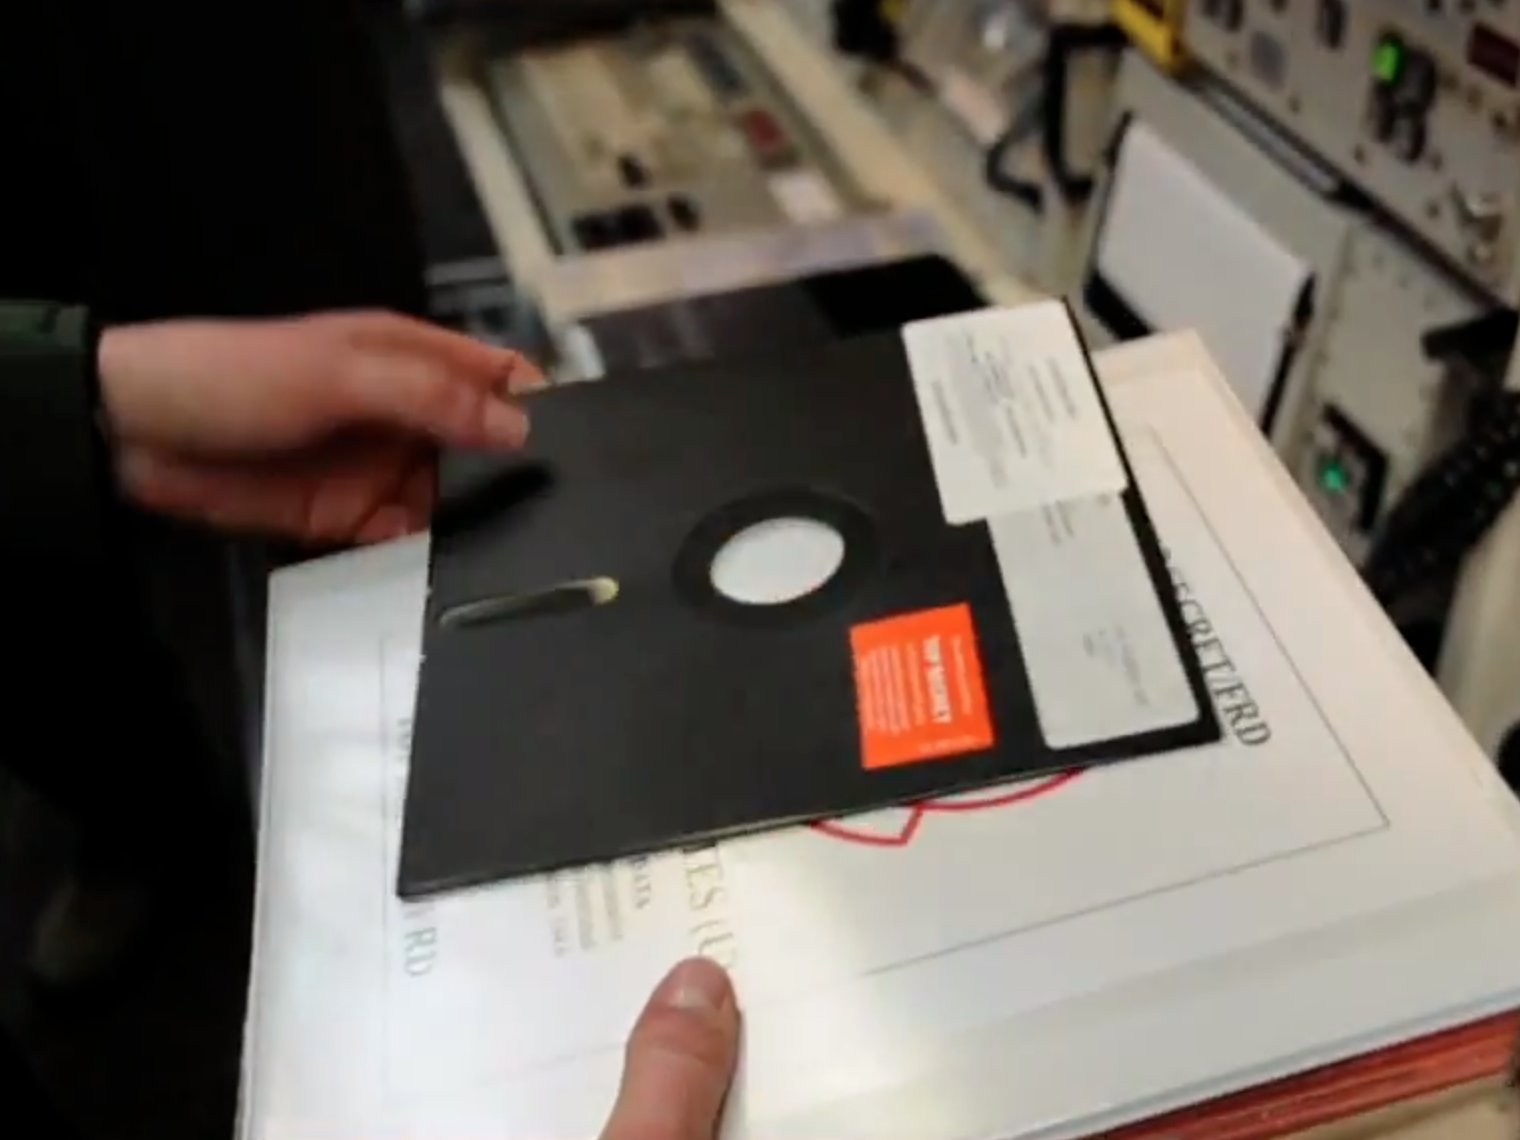 America's nukes are controlled by 8-inch floppy disks